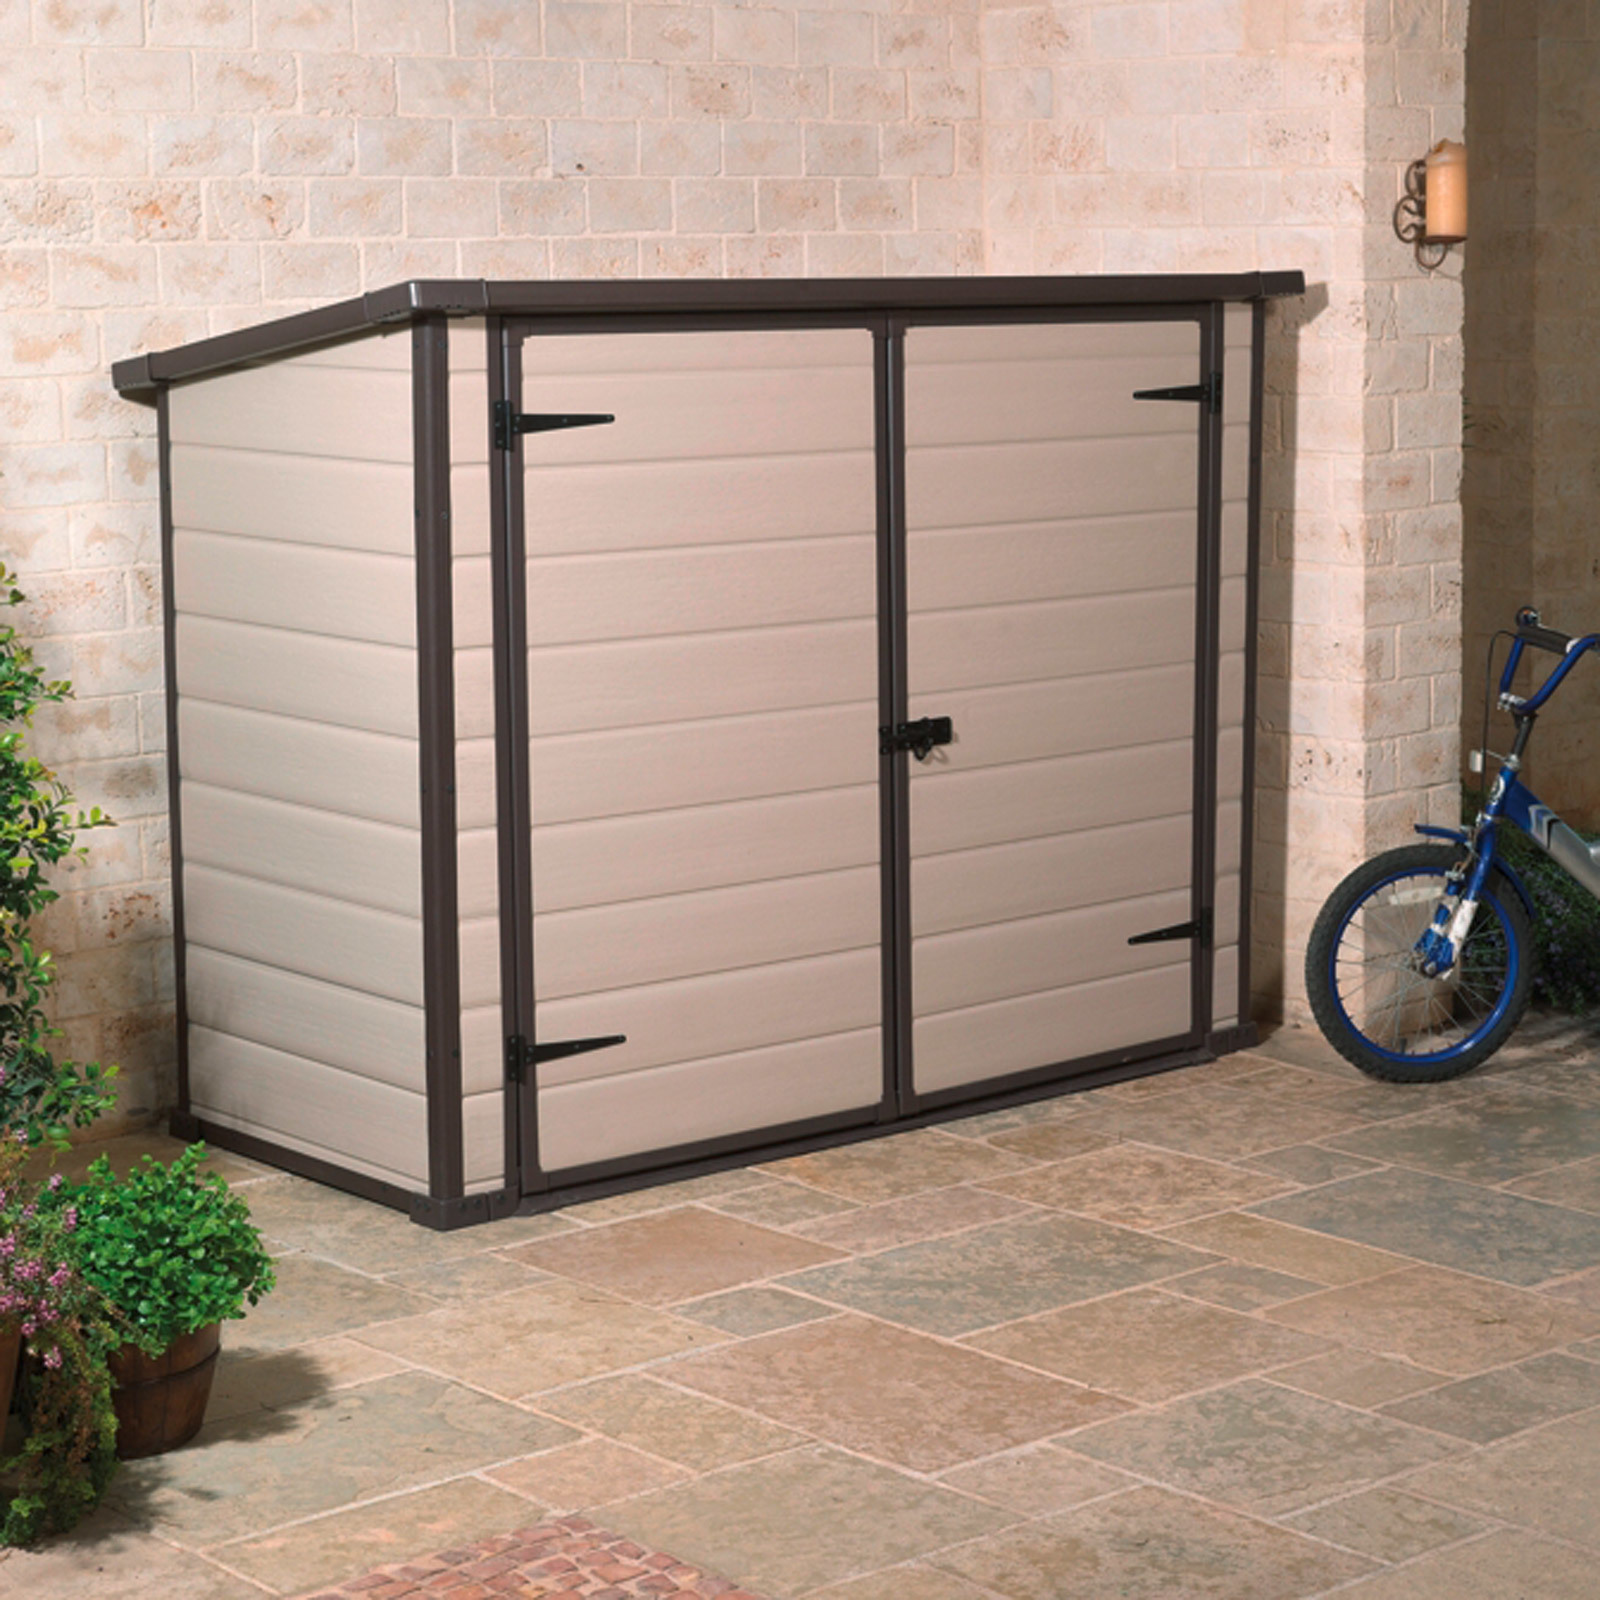 garten universalbox f r fahrr der m lltonnen m lltonnenbox fahrradgarage braun ebay. Black Bedroom Furniture Sets. Home Design Ideas